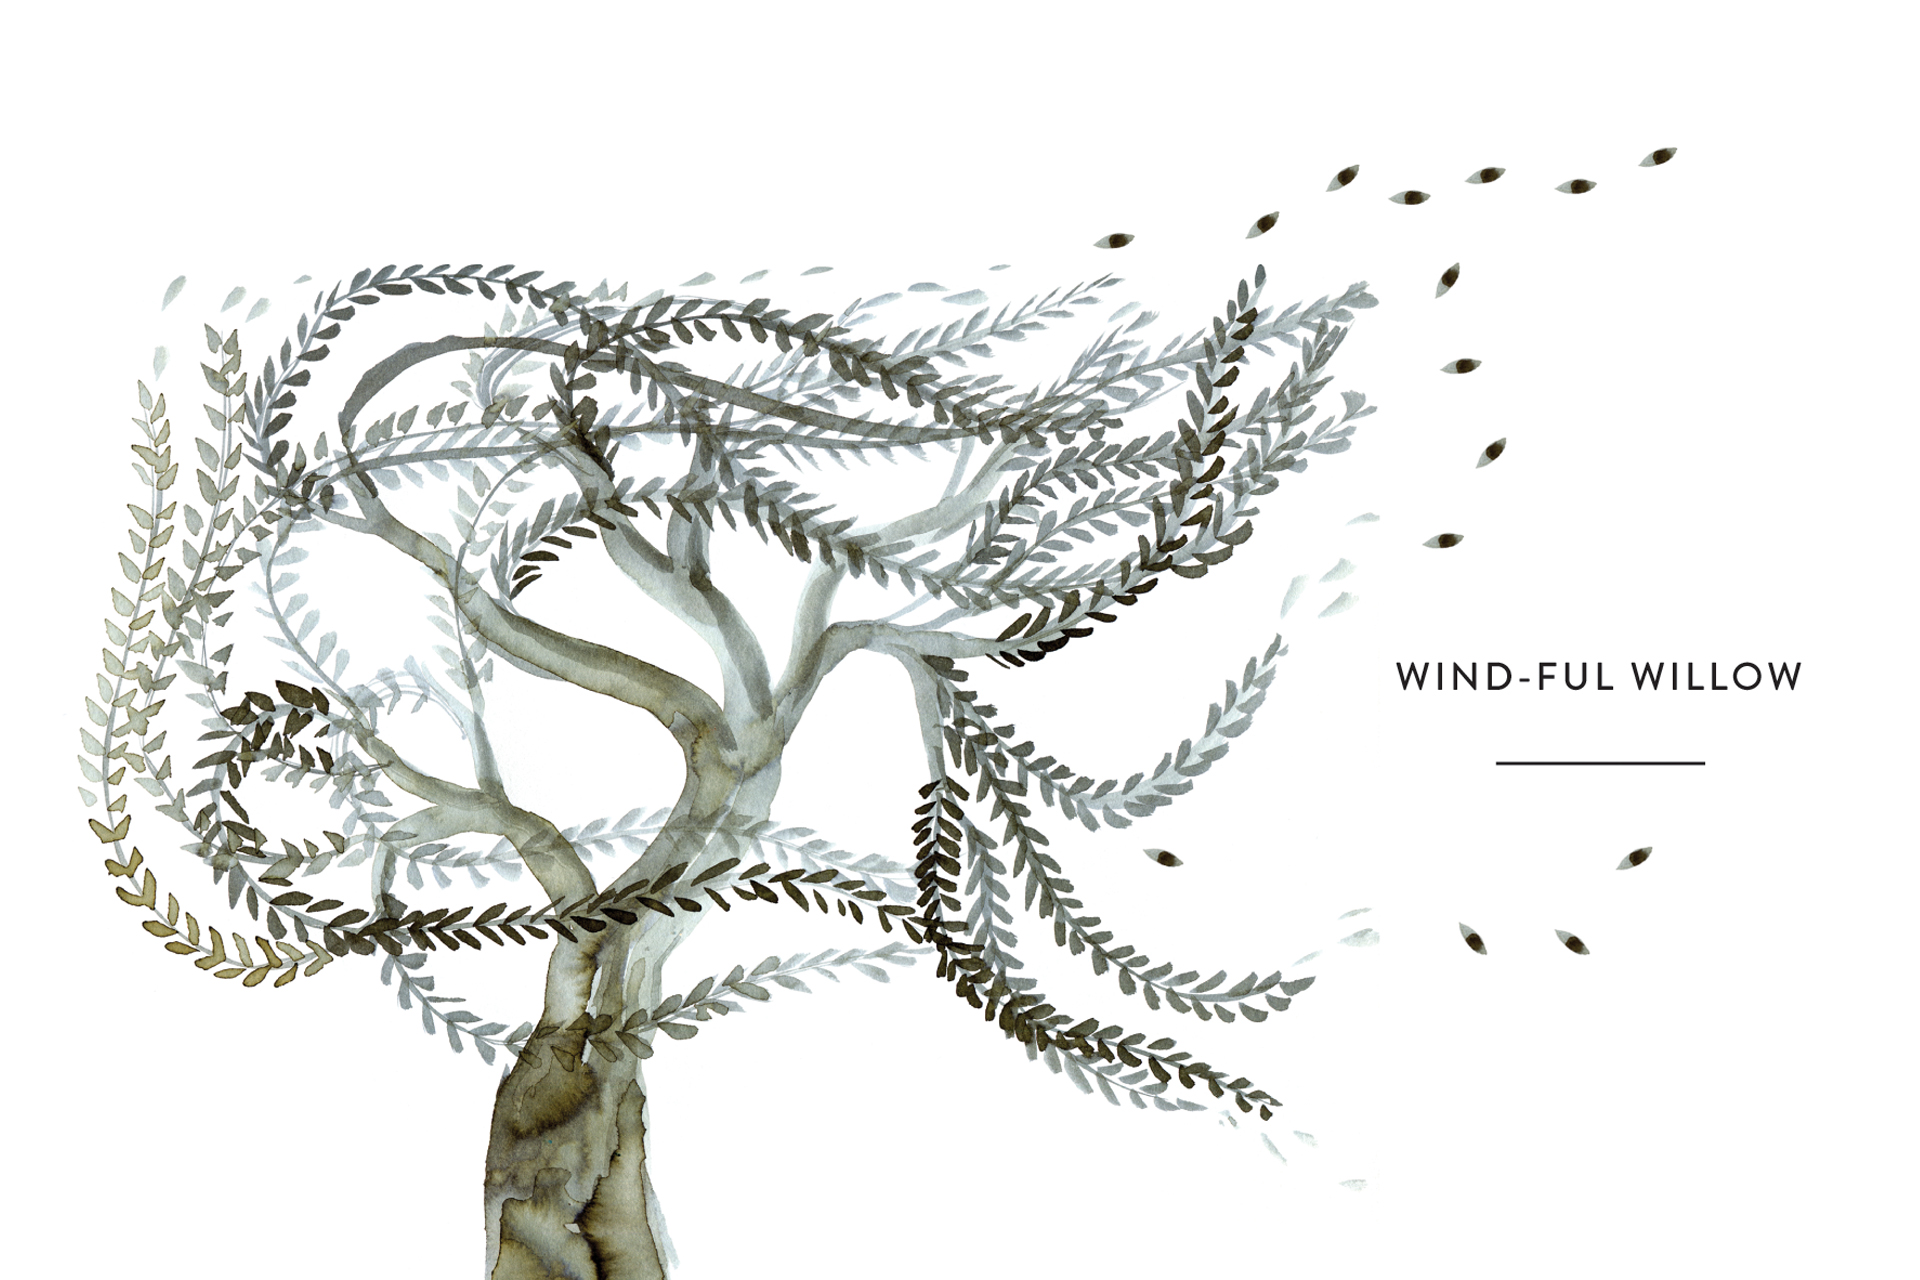 Windful Willow